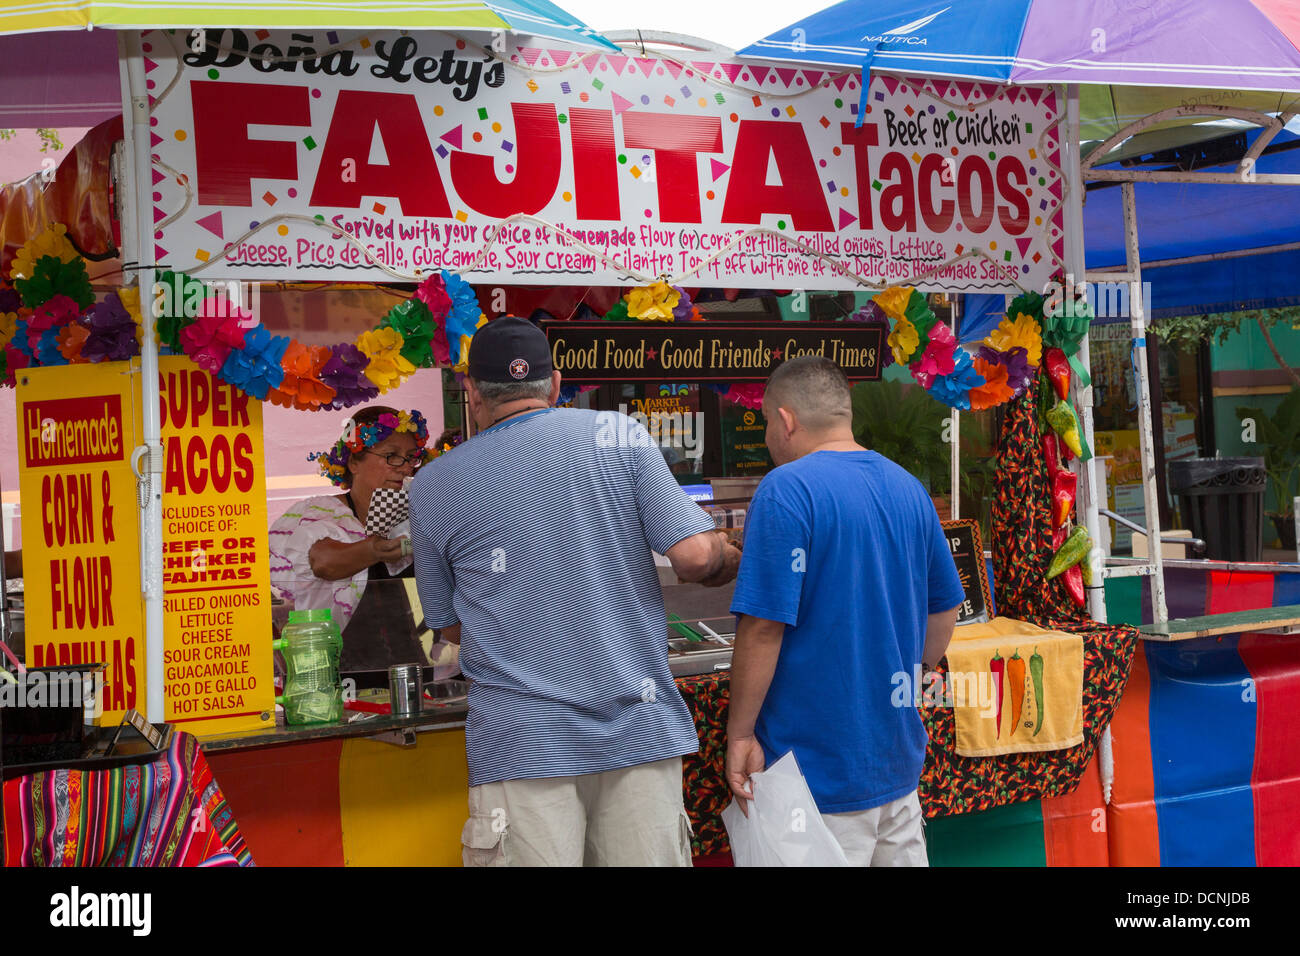 food stand in market square in san antonio texas stock photo 59482455 alamy. Black Bedroom Furniture Sets. Home Design Ideas